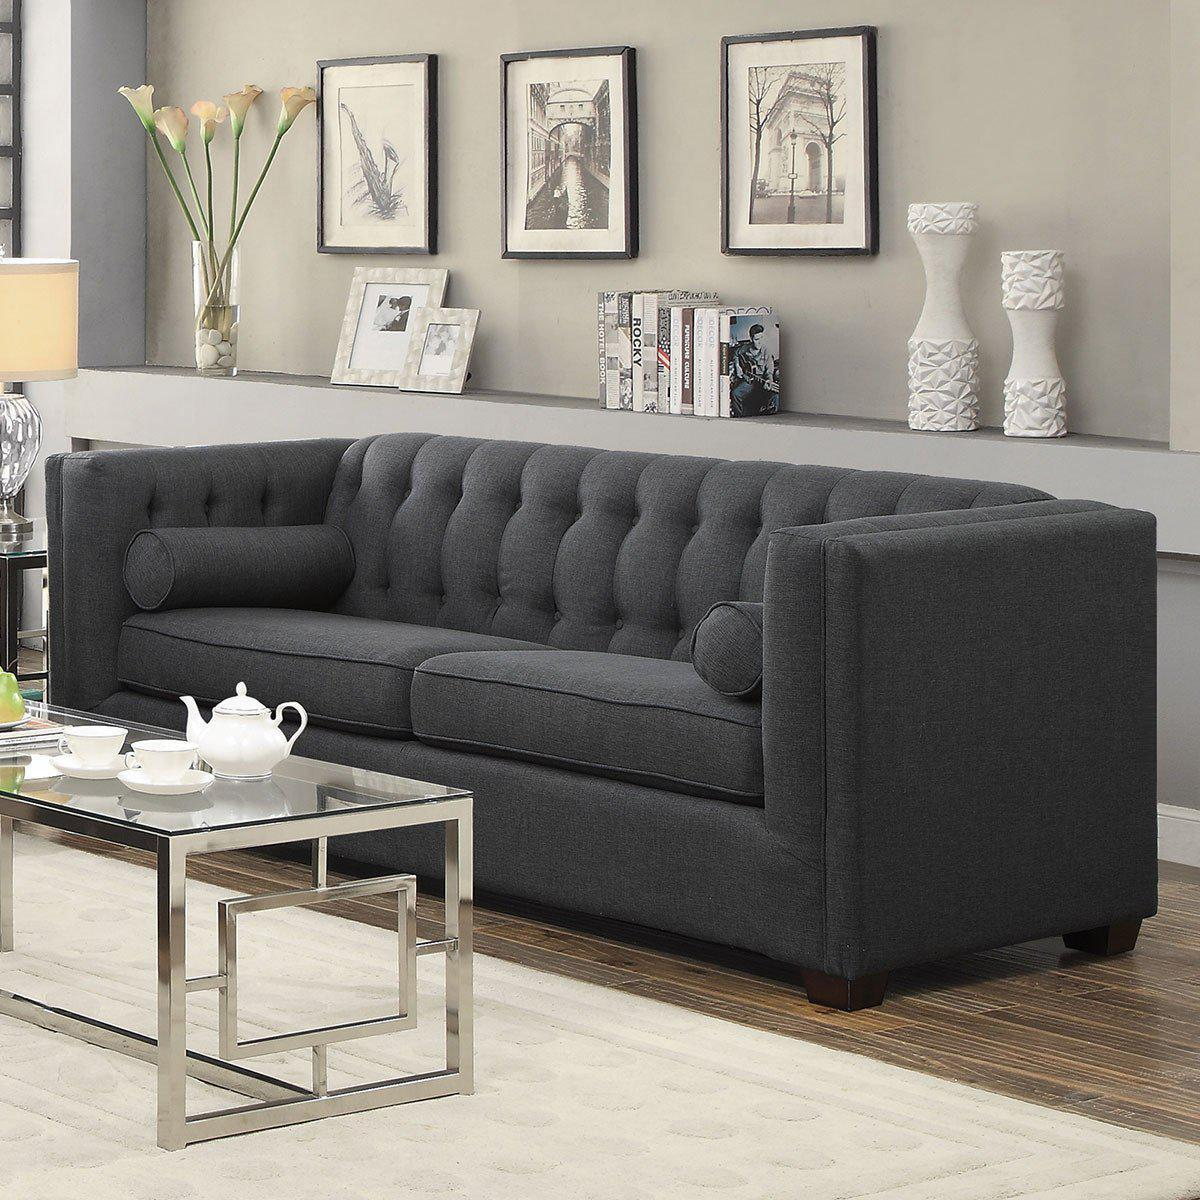 Cairns Sofa-sofas-Jennifer Furniture